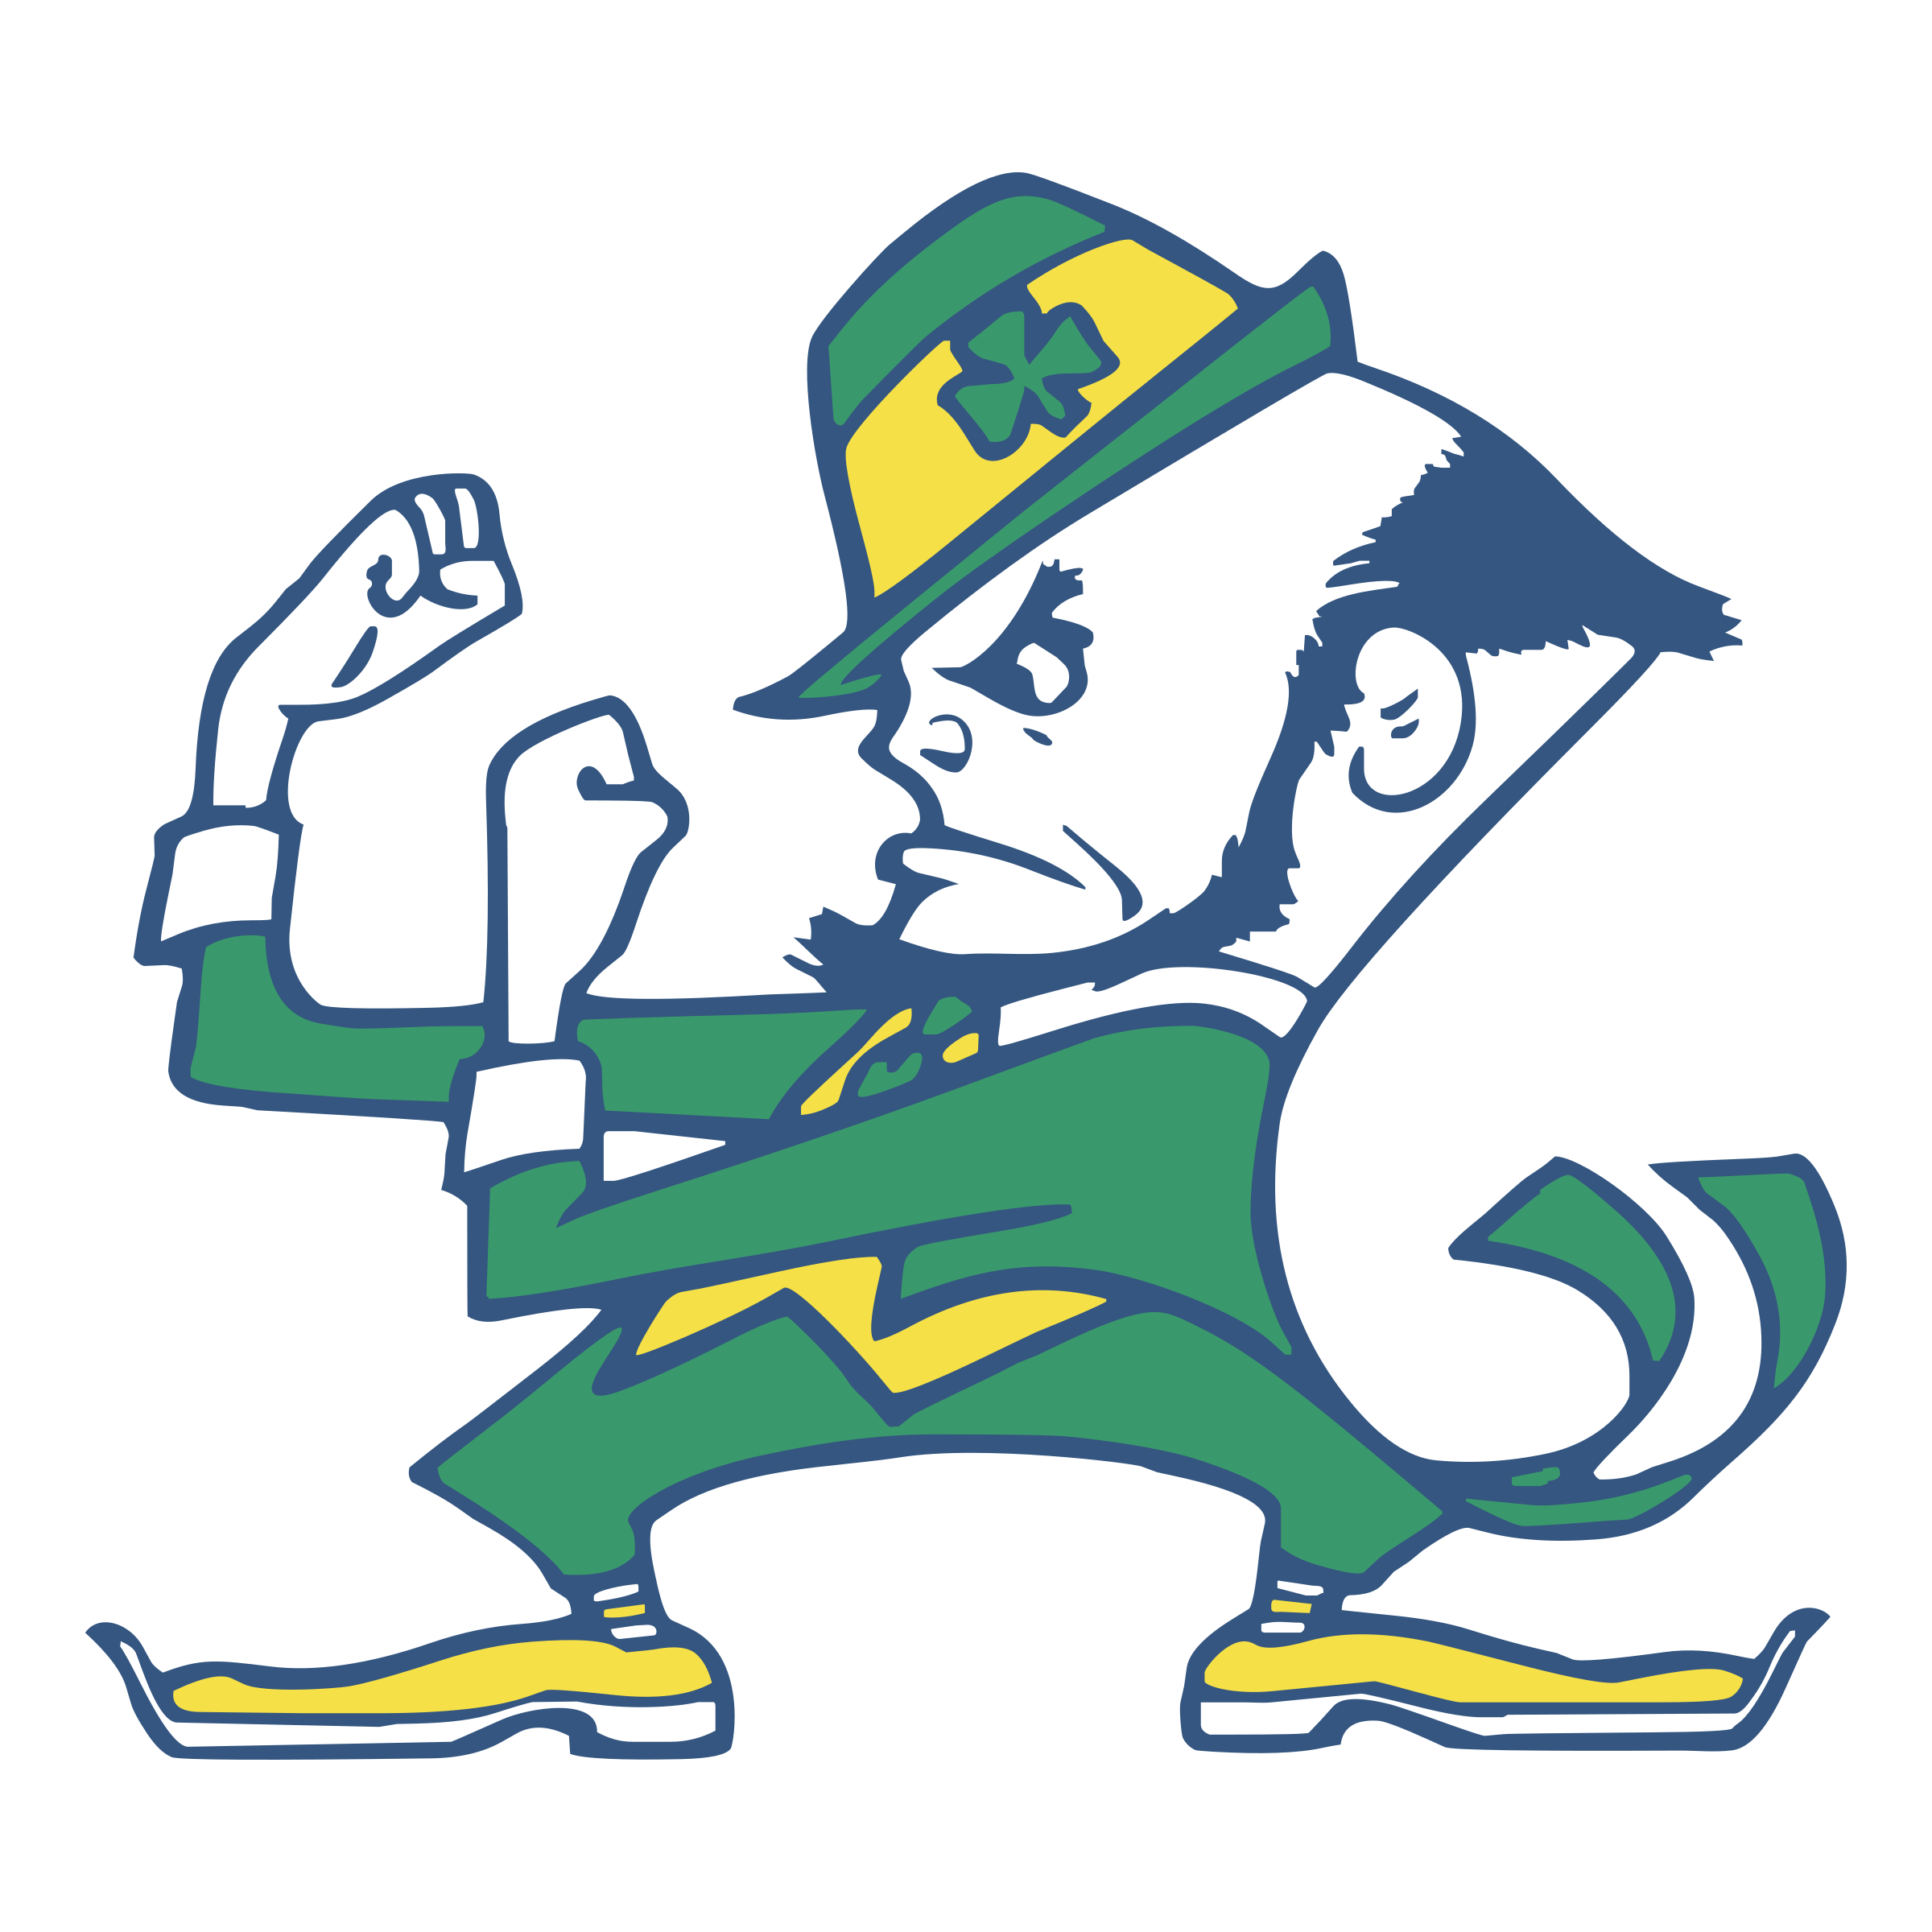 Fighting irish clipart football. Notre dame logo png